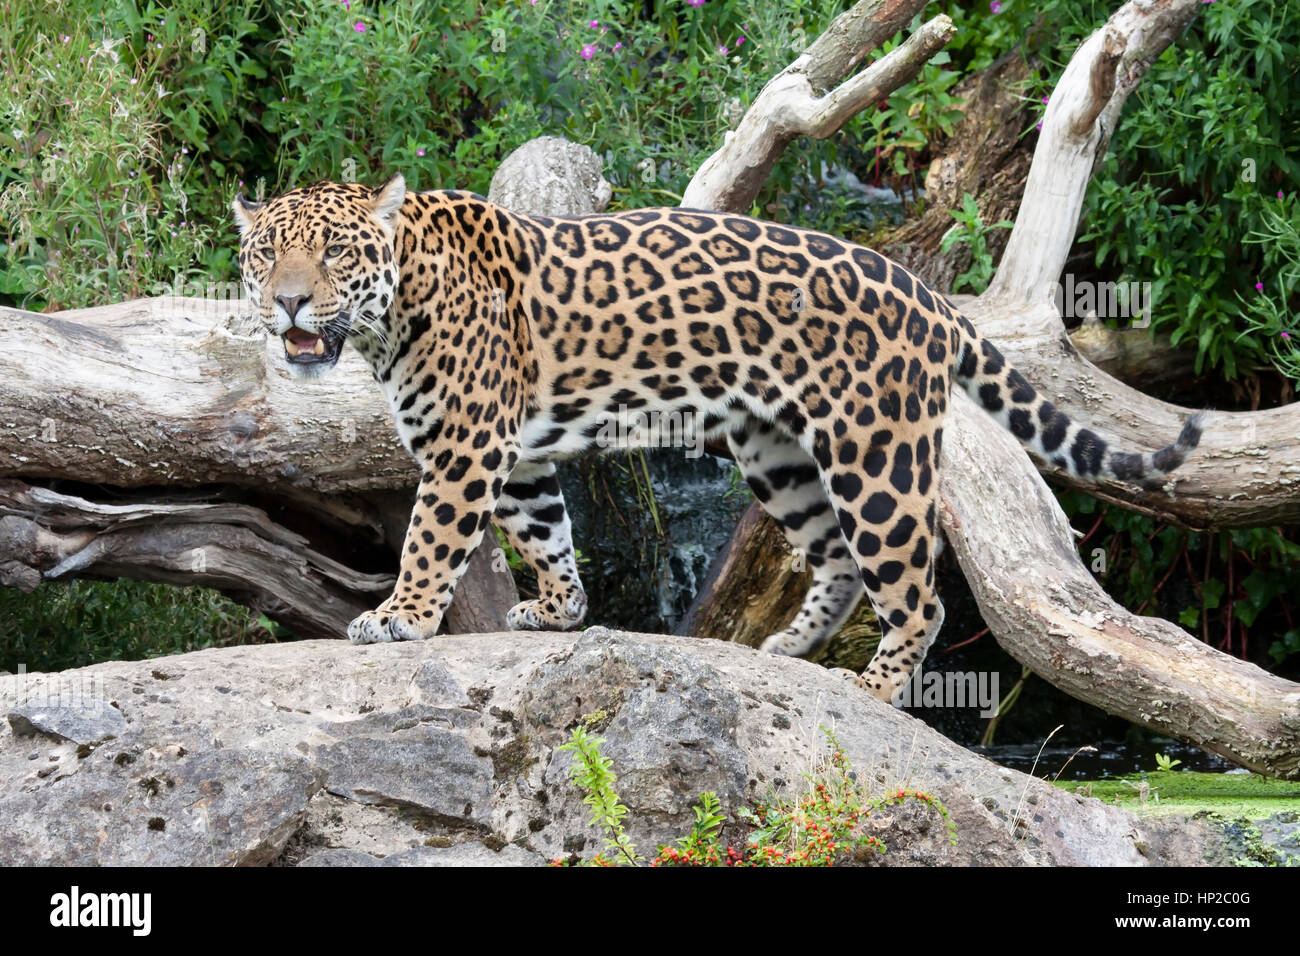 'Napo'  one of the Male Jaguars  at Chester Zoo, England, UK - Stock Image